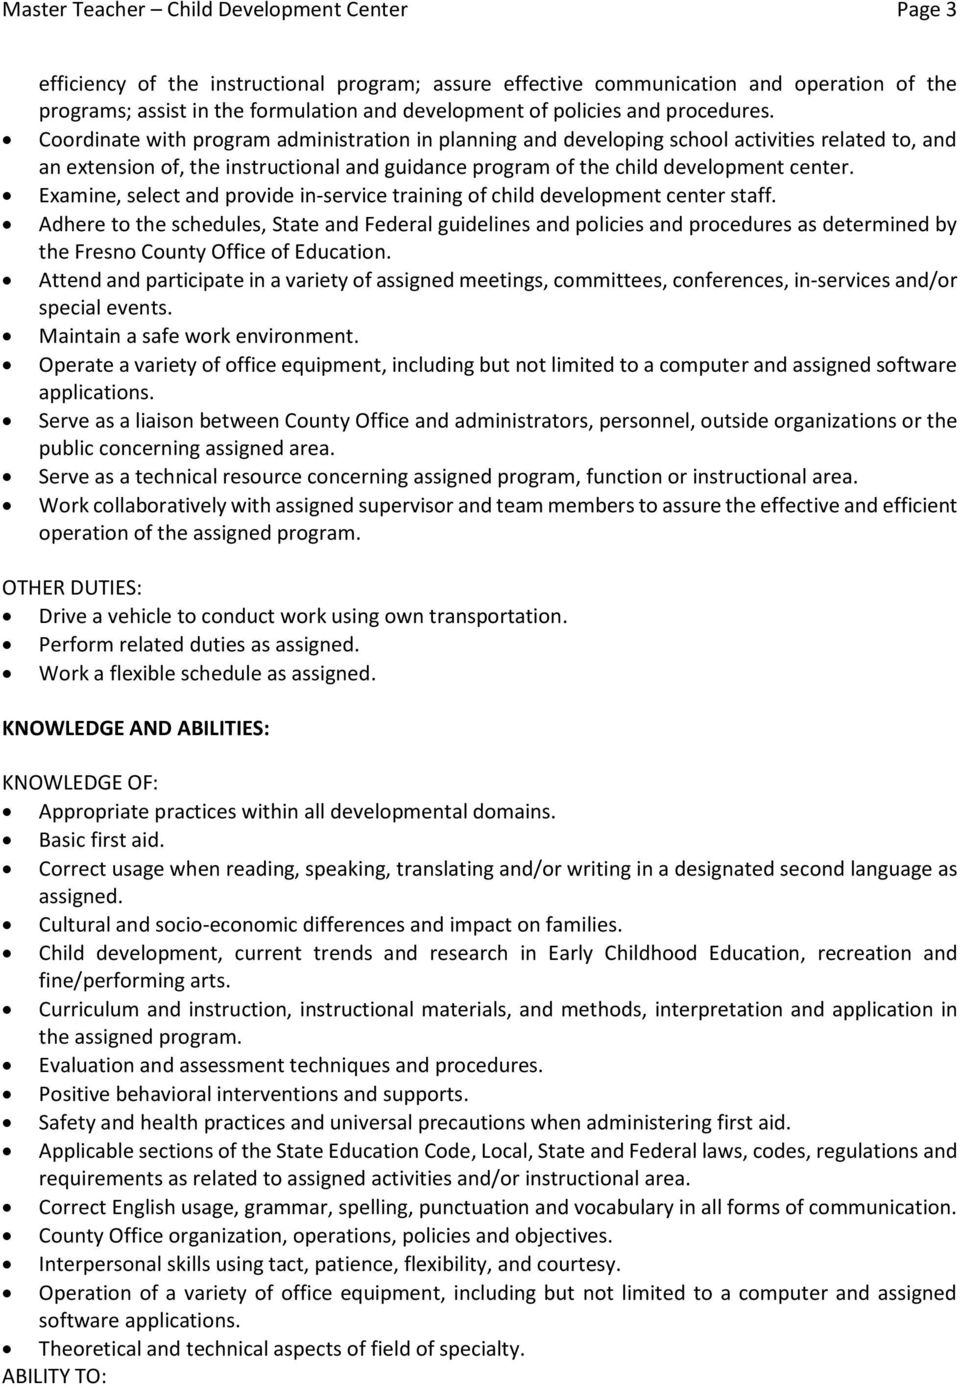 Coordinate with program administration in planning and developing school activities related to, and an extension of, the instructional and guidance program of the child development center.